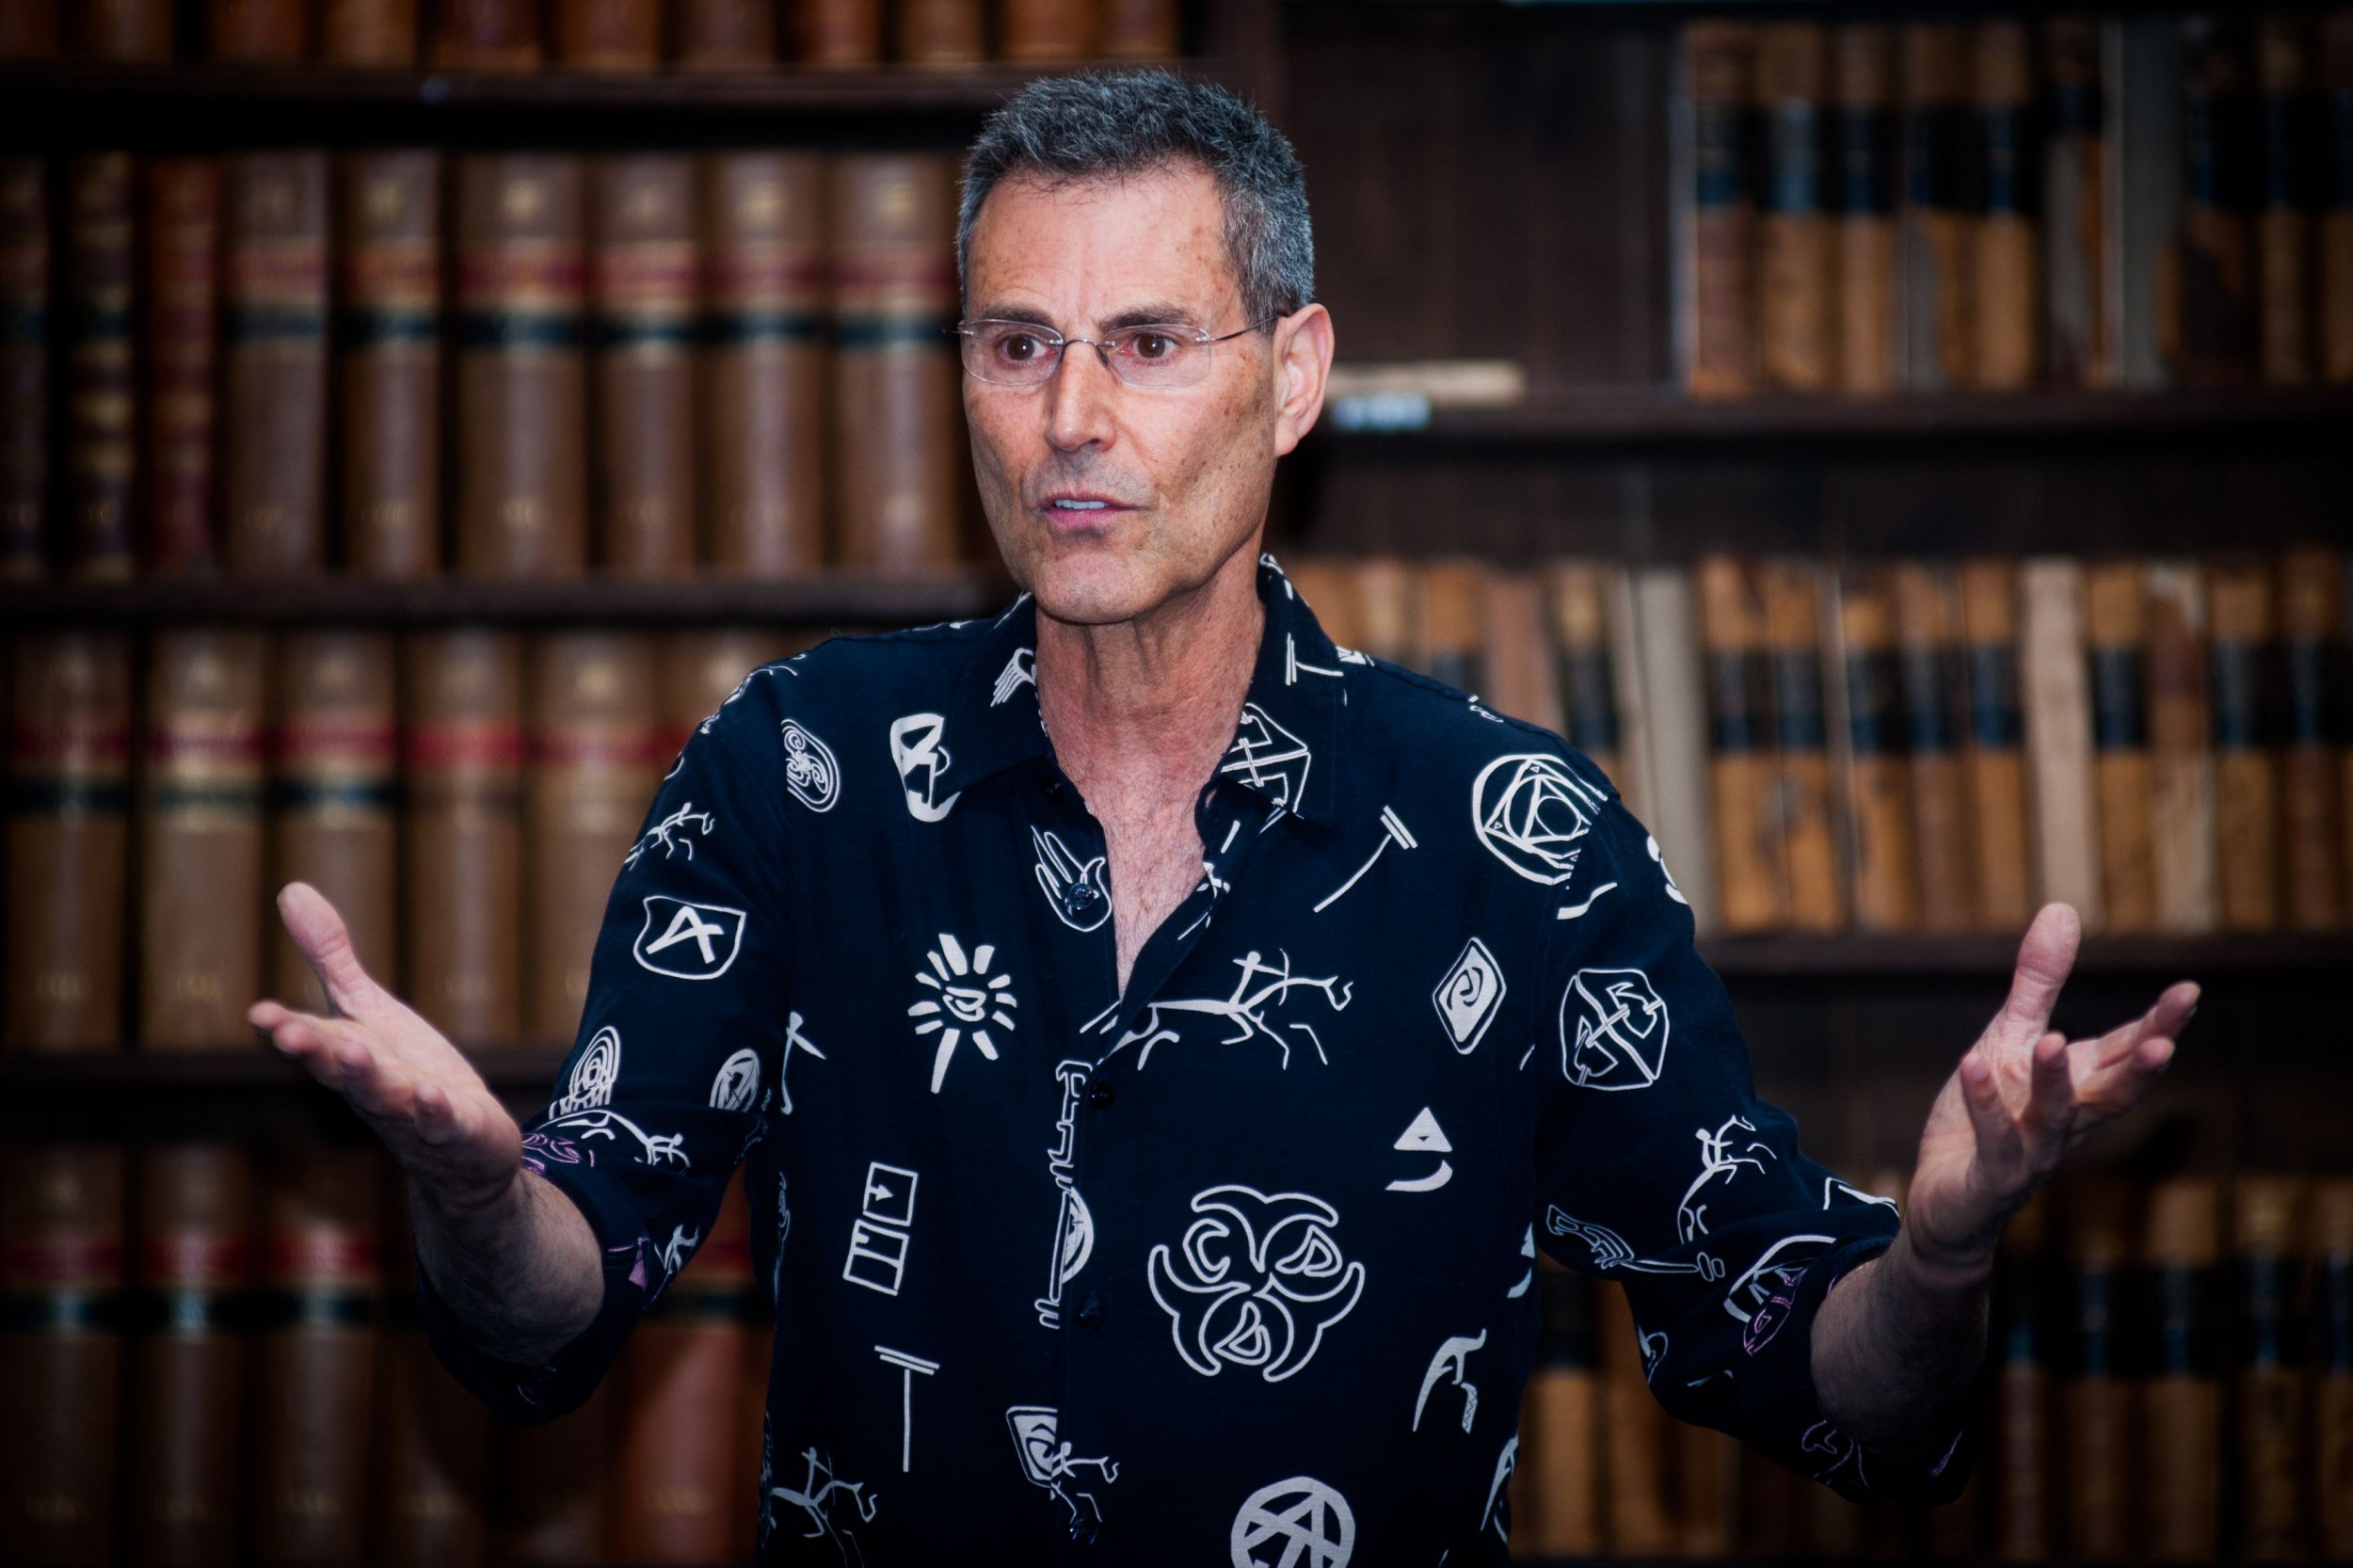 Mandatory Credit: Photo by Roger Askew/REX/Shutterstock (3787757h) Uri Geller Uri Geller speaking at the Oxford Union, Britain - 03 Jun 2014